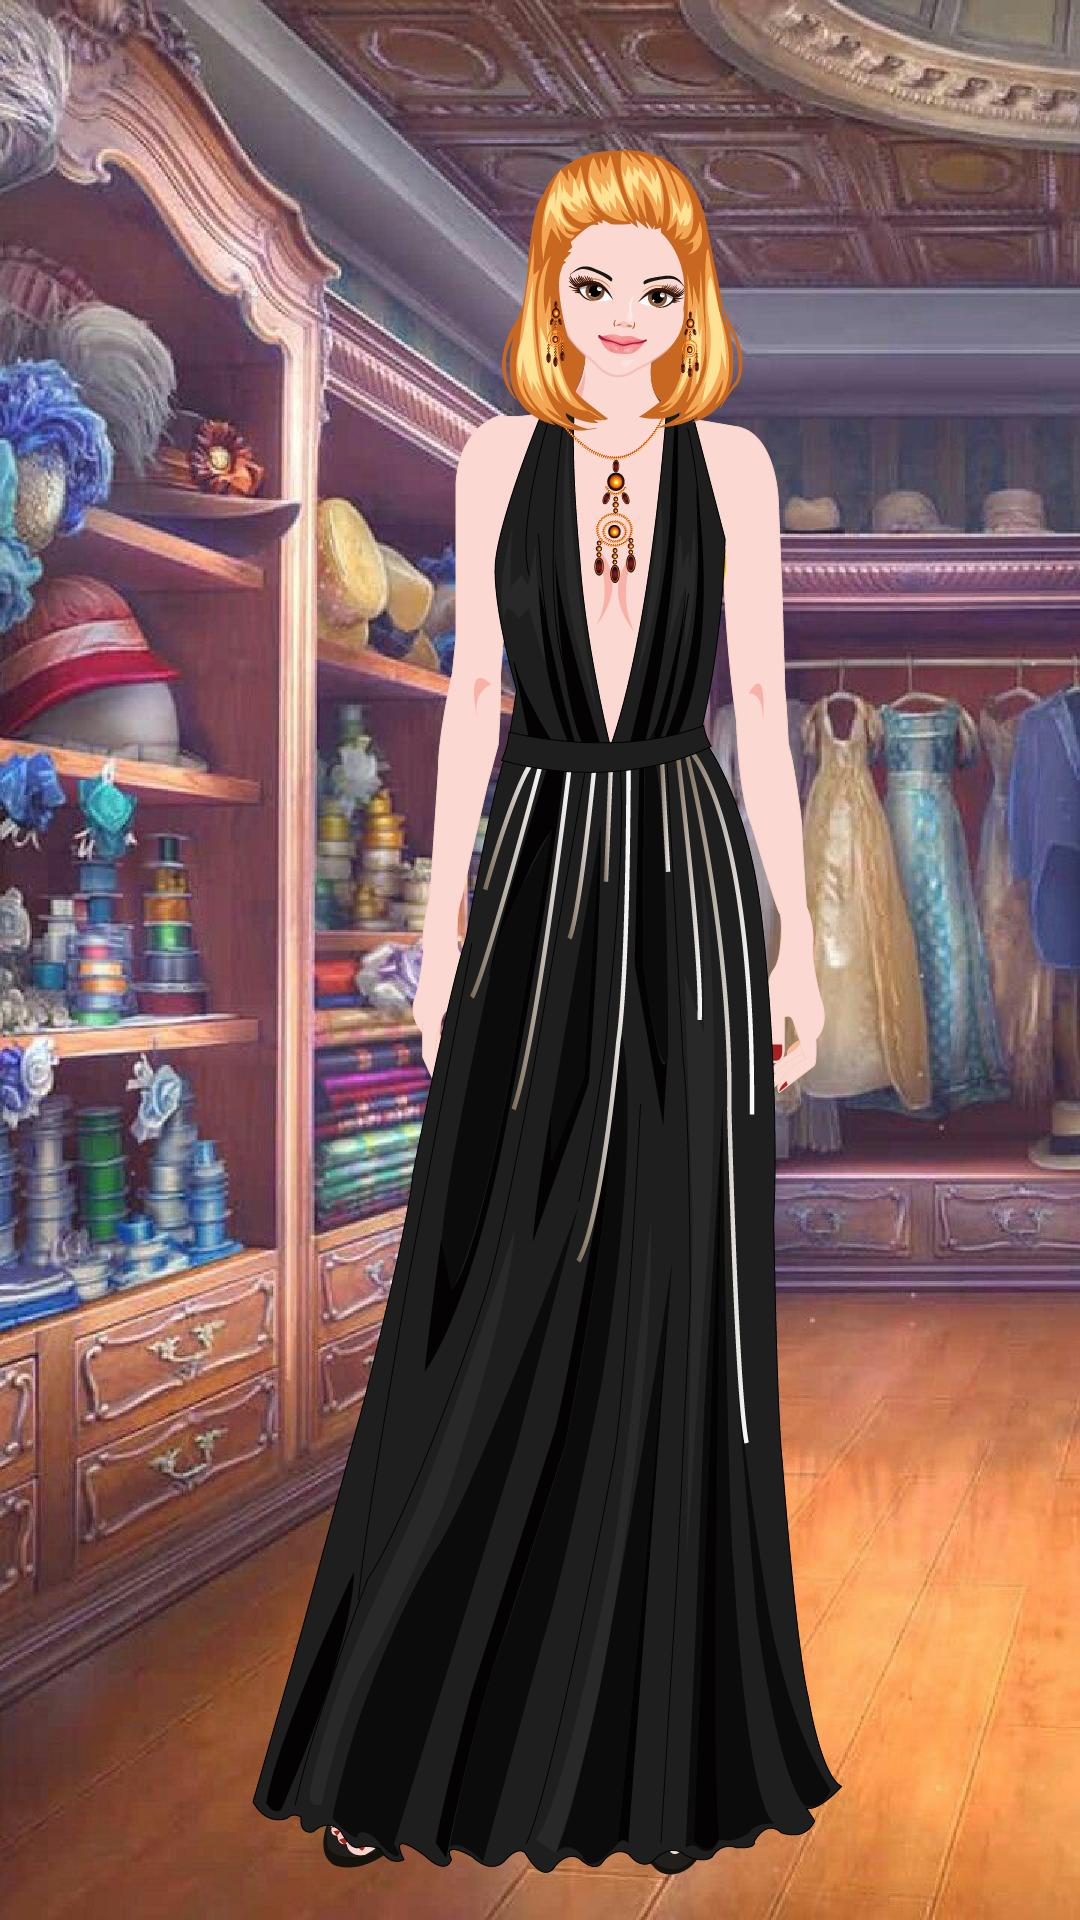 Dress Up Game Fashion Studio For Android Apk Download